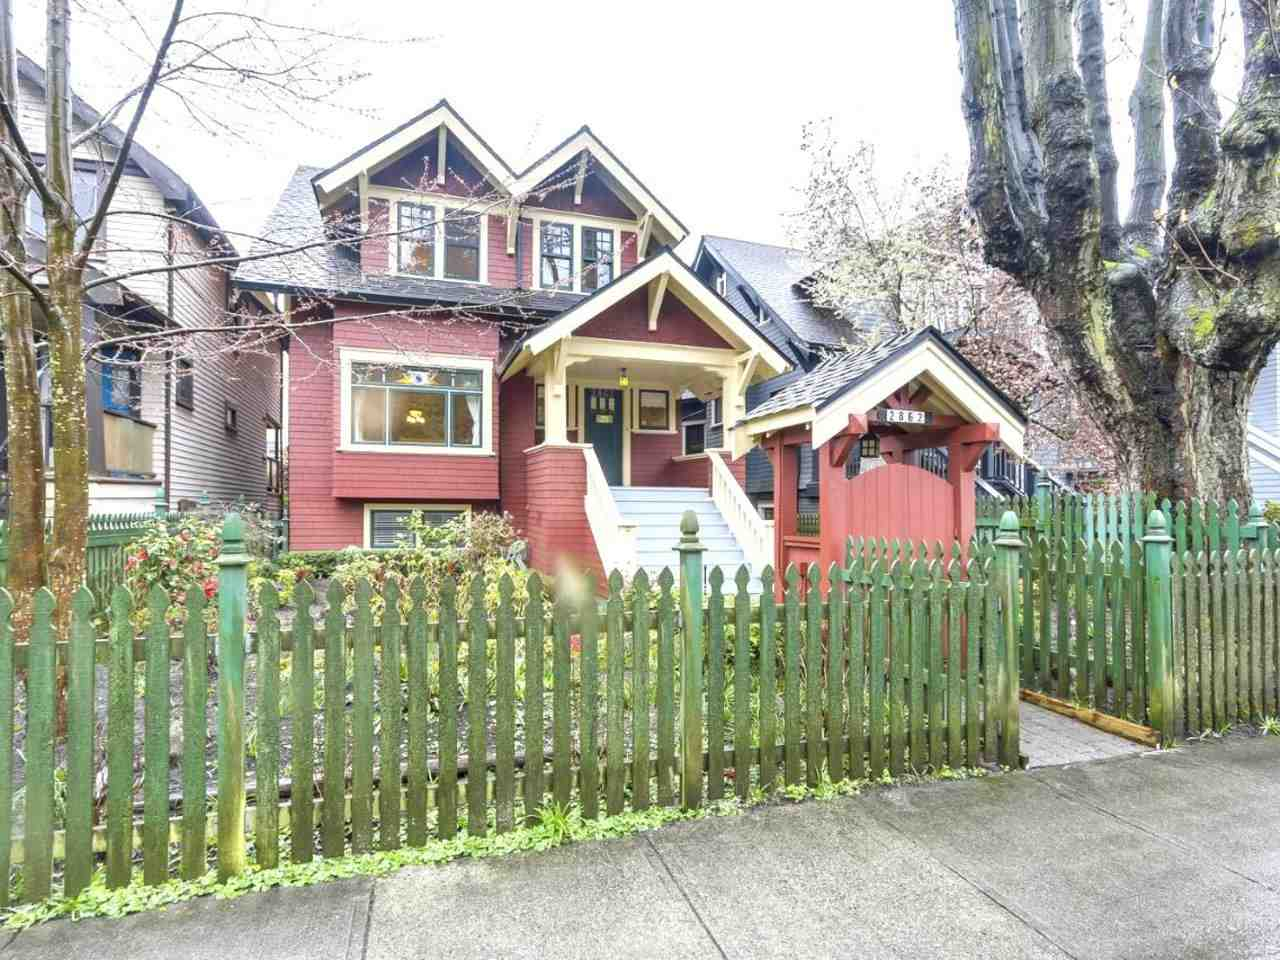 Main Photo: 2862 W 3RD Avenue in Vancouver: Kitsilano House for sale (Vancouver West)  : MLS®# R2253793